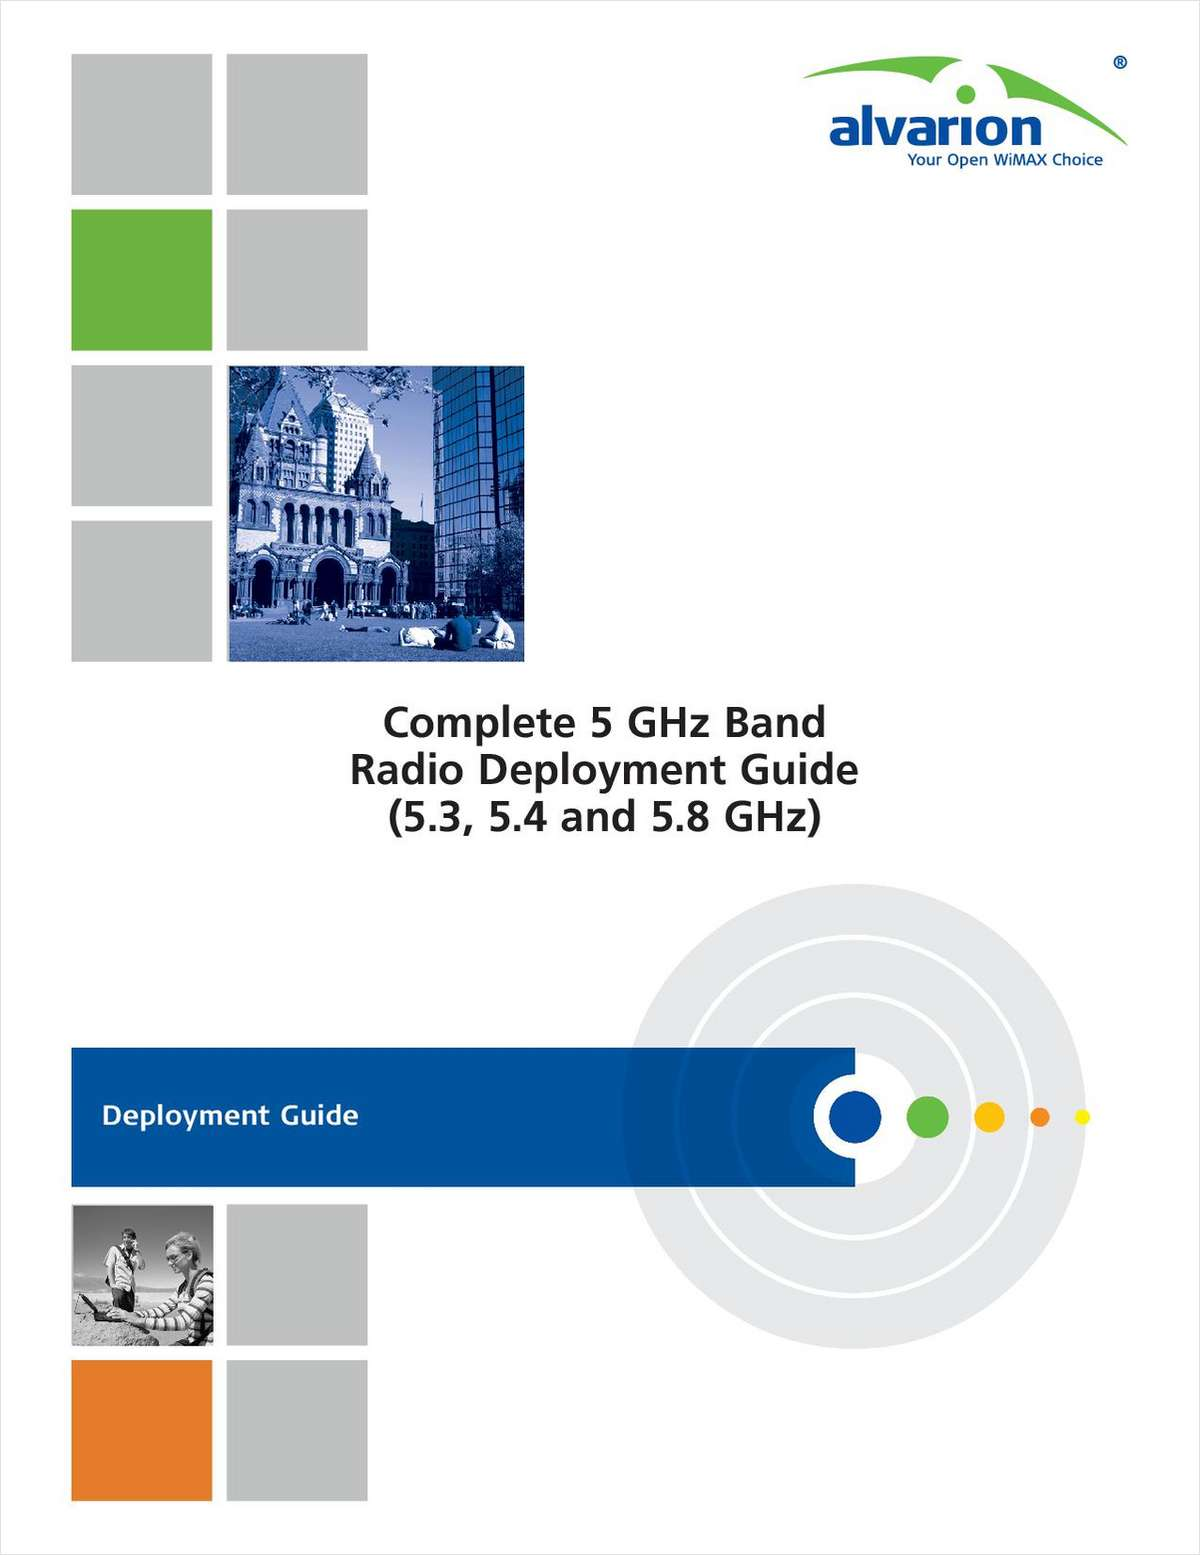 Complete 5 GHz Band Radio Deployment Guide (5.3, 5.4 and 5.8 GHz)